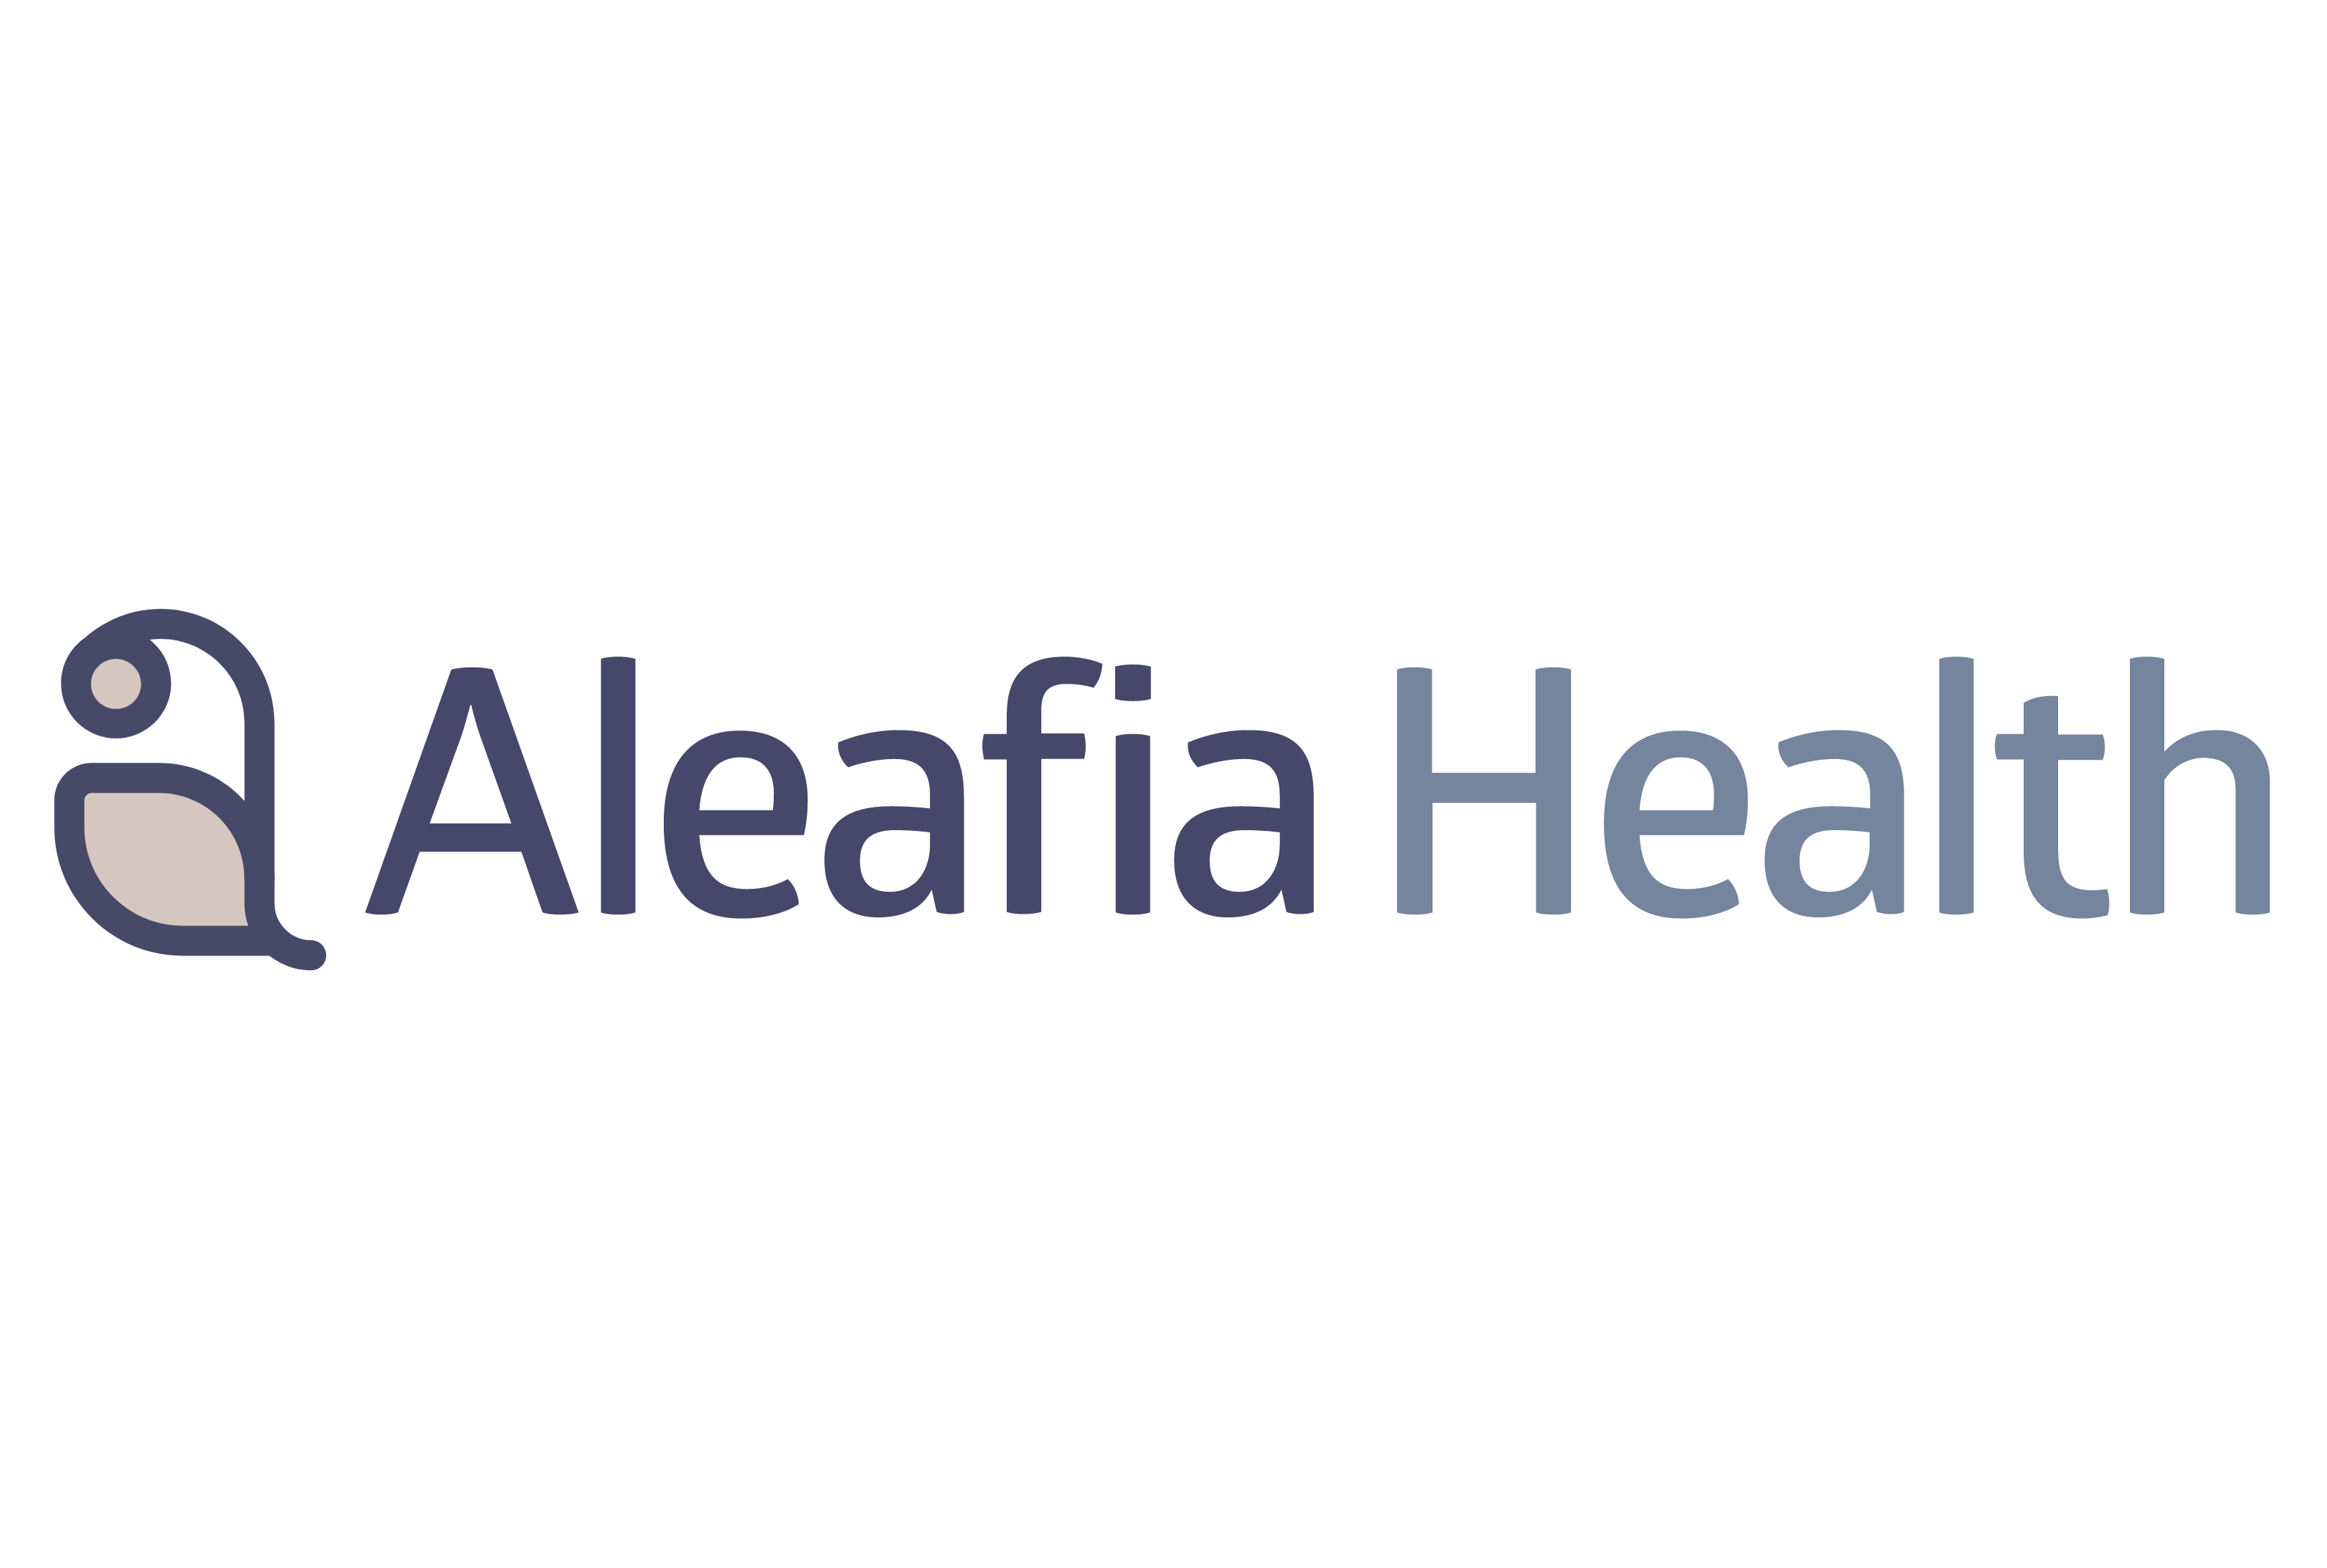 Aleafia Health Announces Closing of $14.95 Million Bought Deal Offering, Including Full Exercise of the Over-Allotment Option